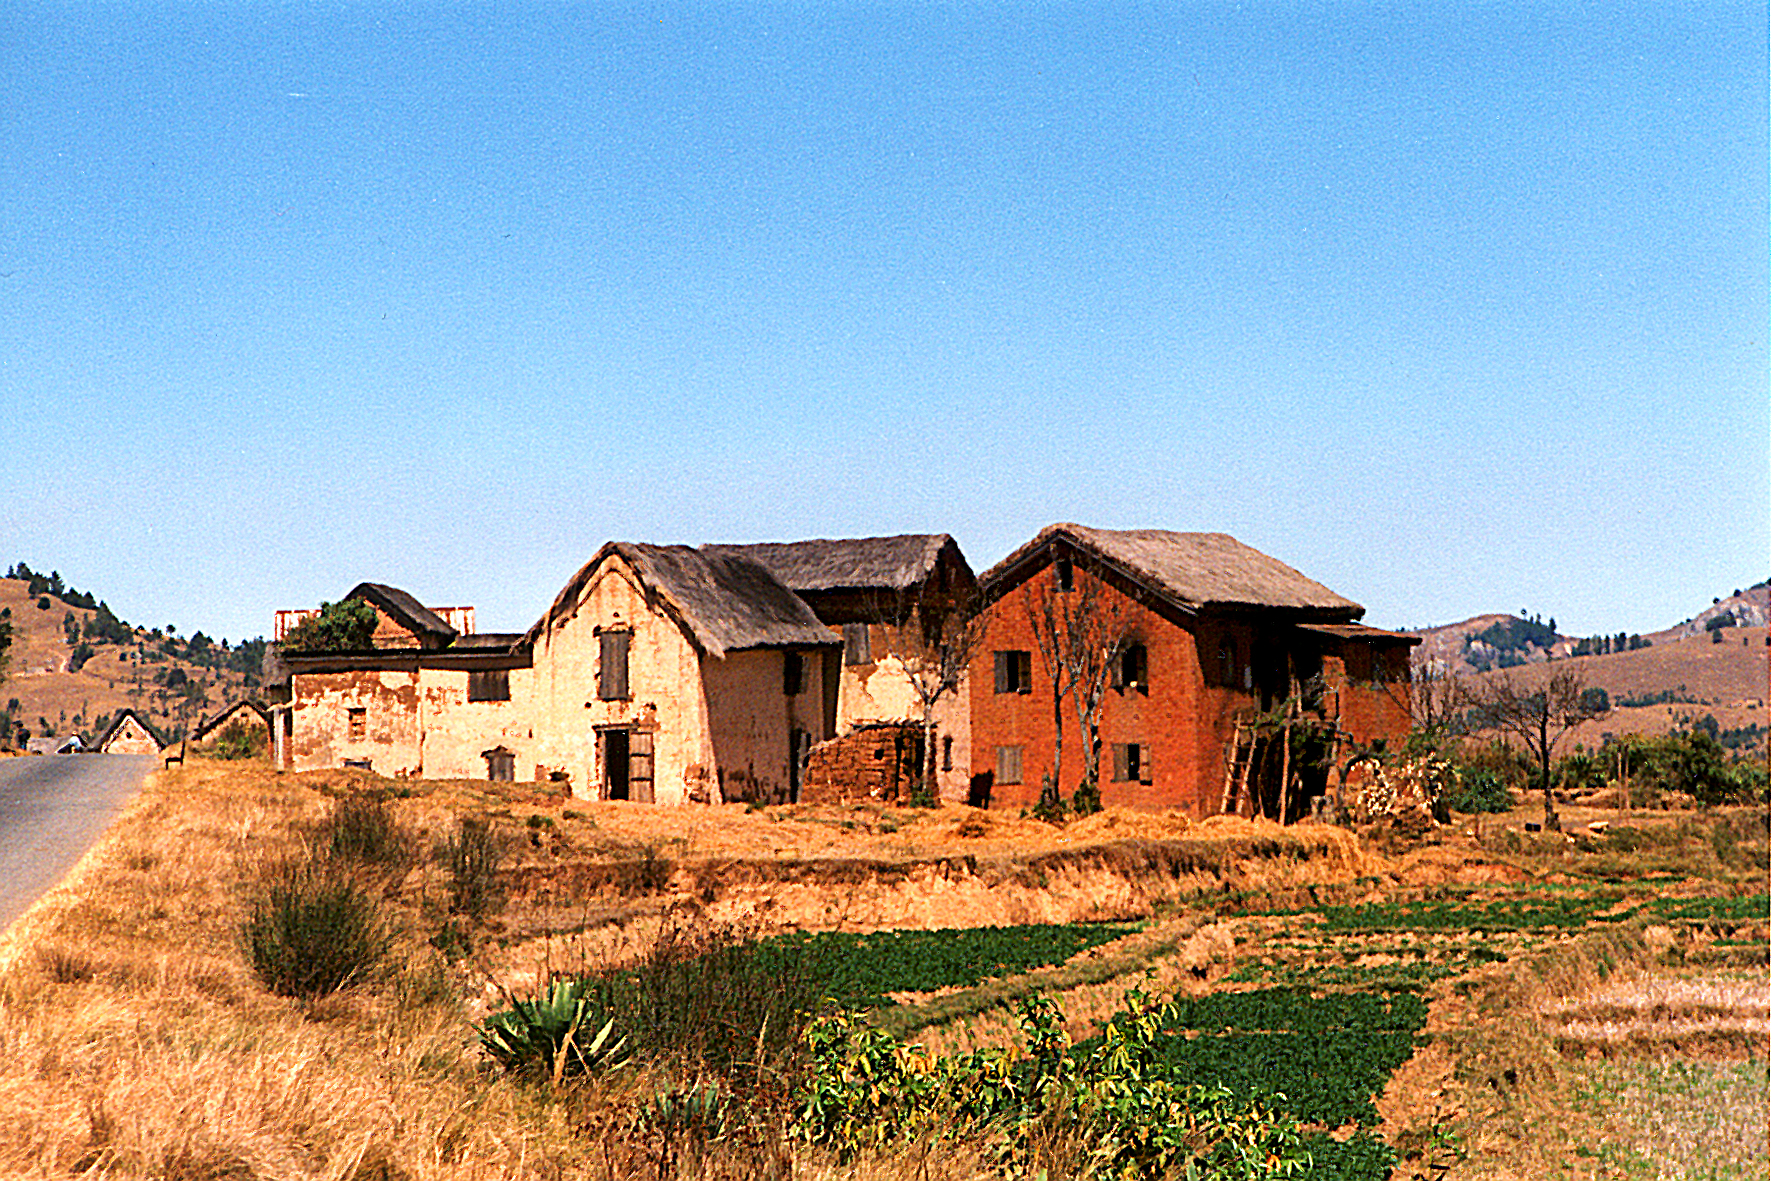 Typical houses